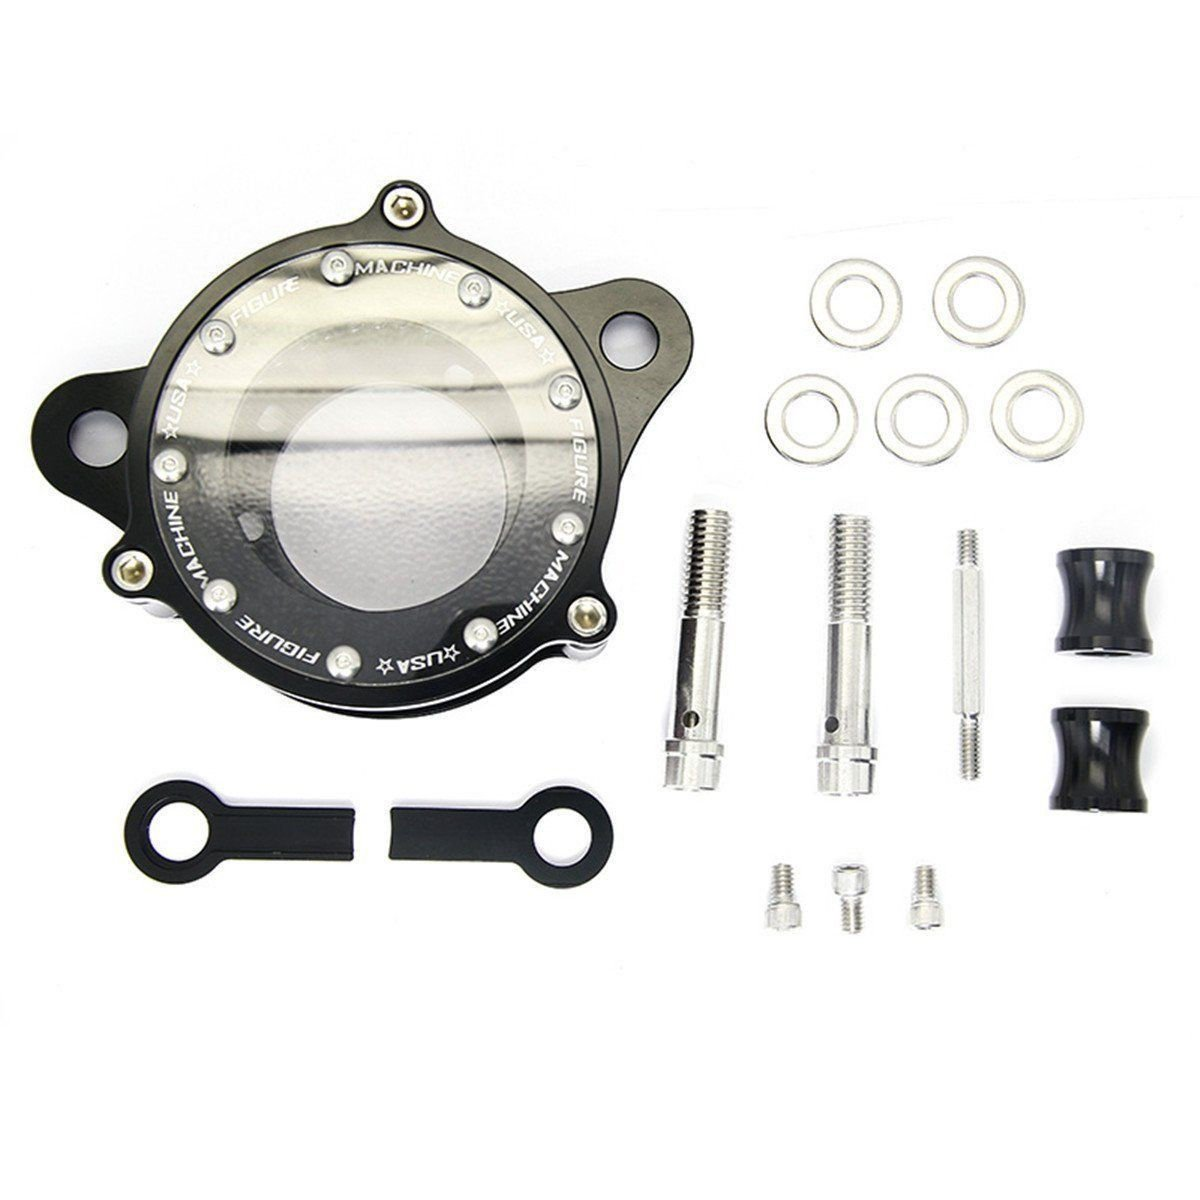 Motorcycle Black See-Thru Air Cleaner Kit Intake Filter For Harley Sportster 1200 XL 883 XR1200